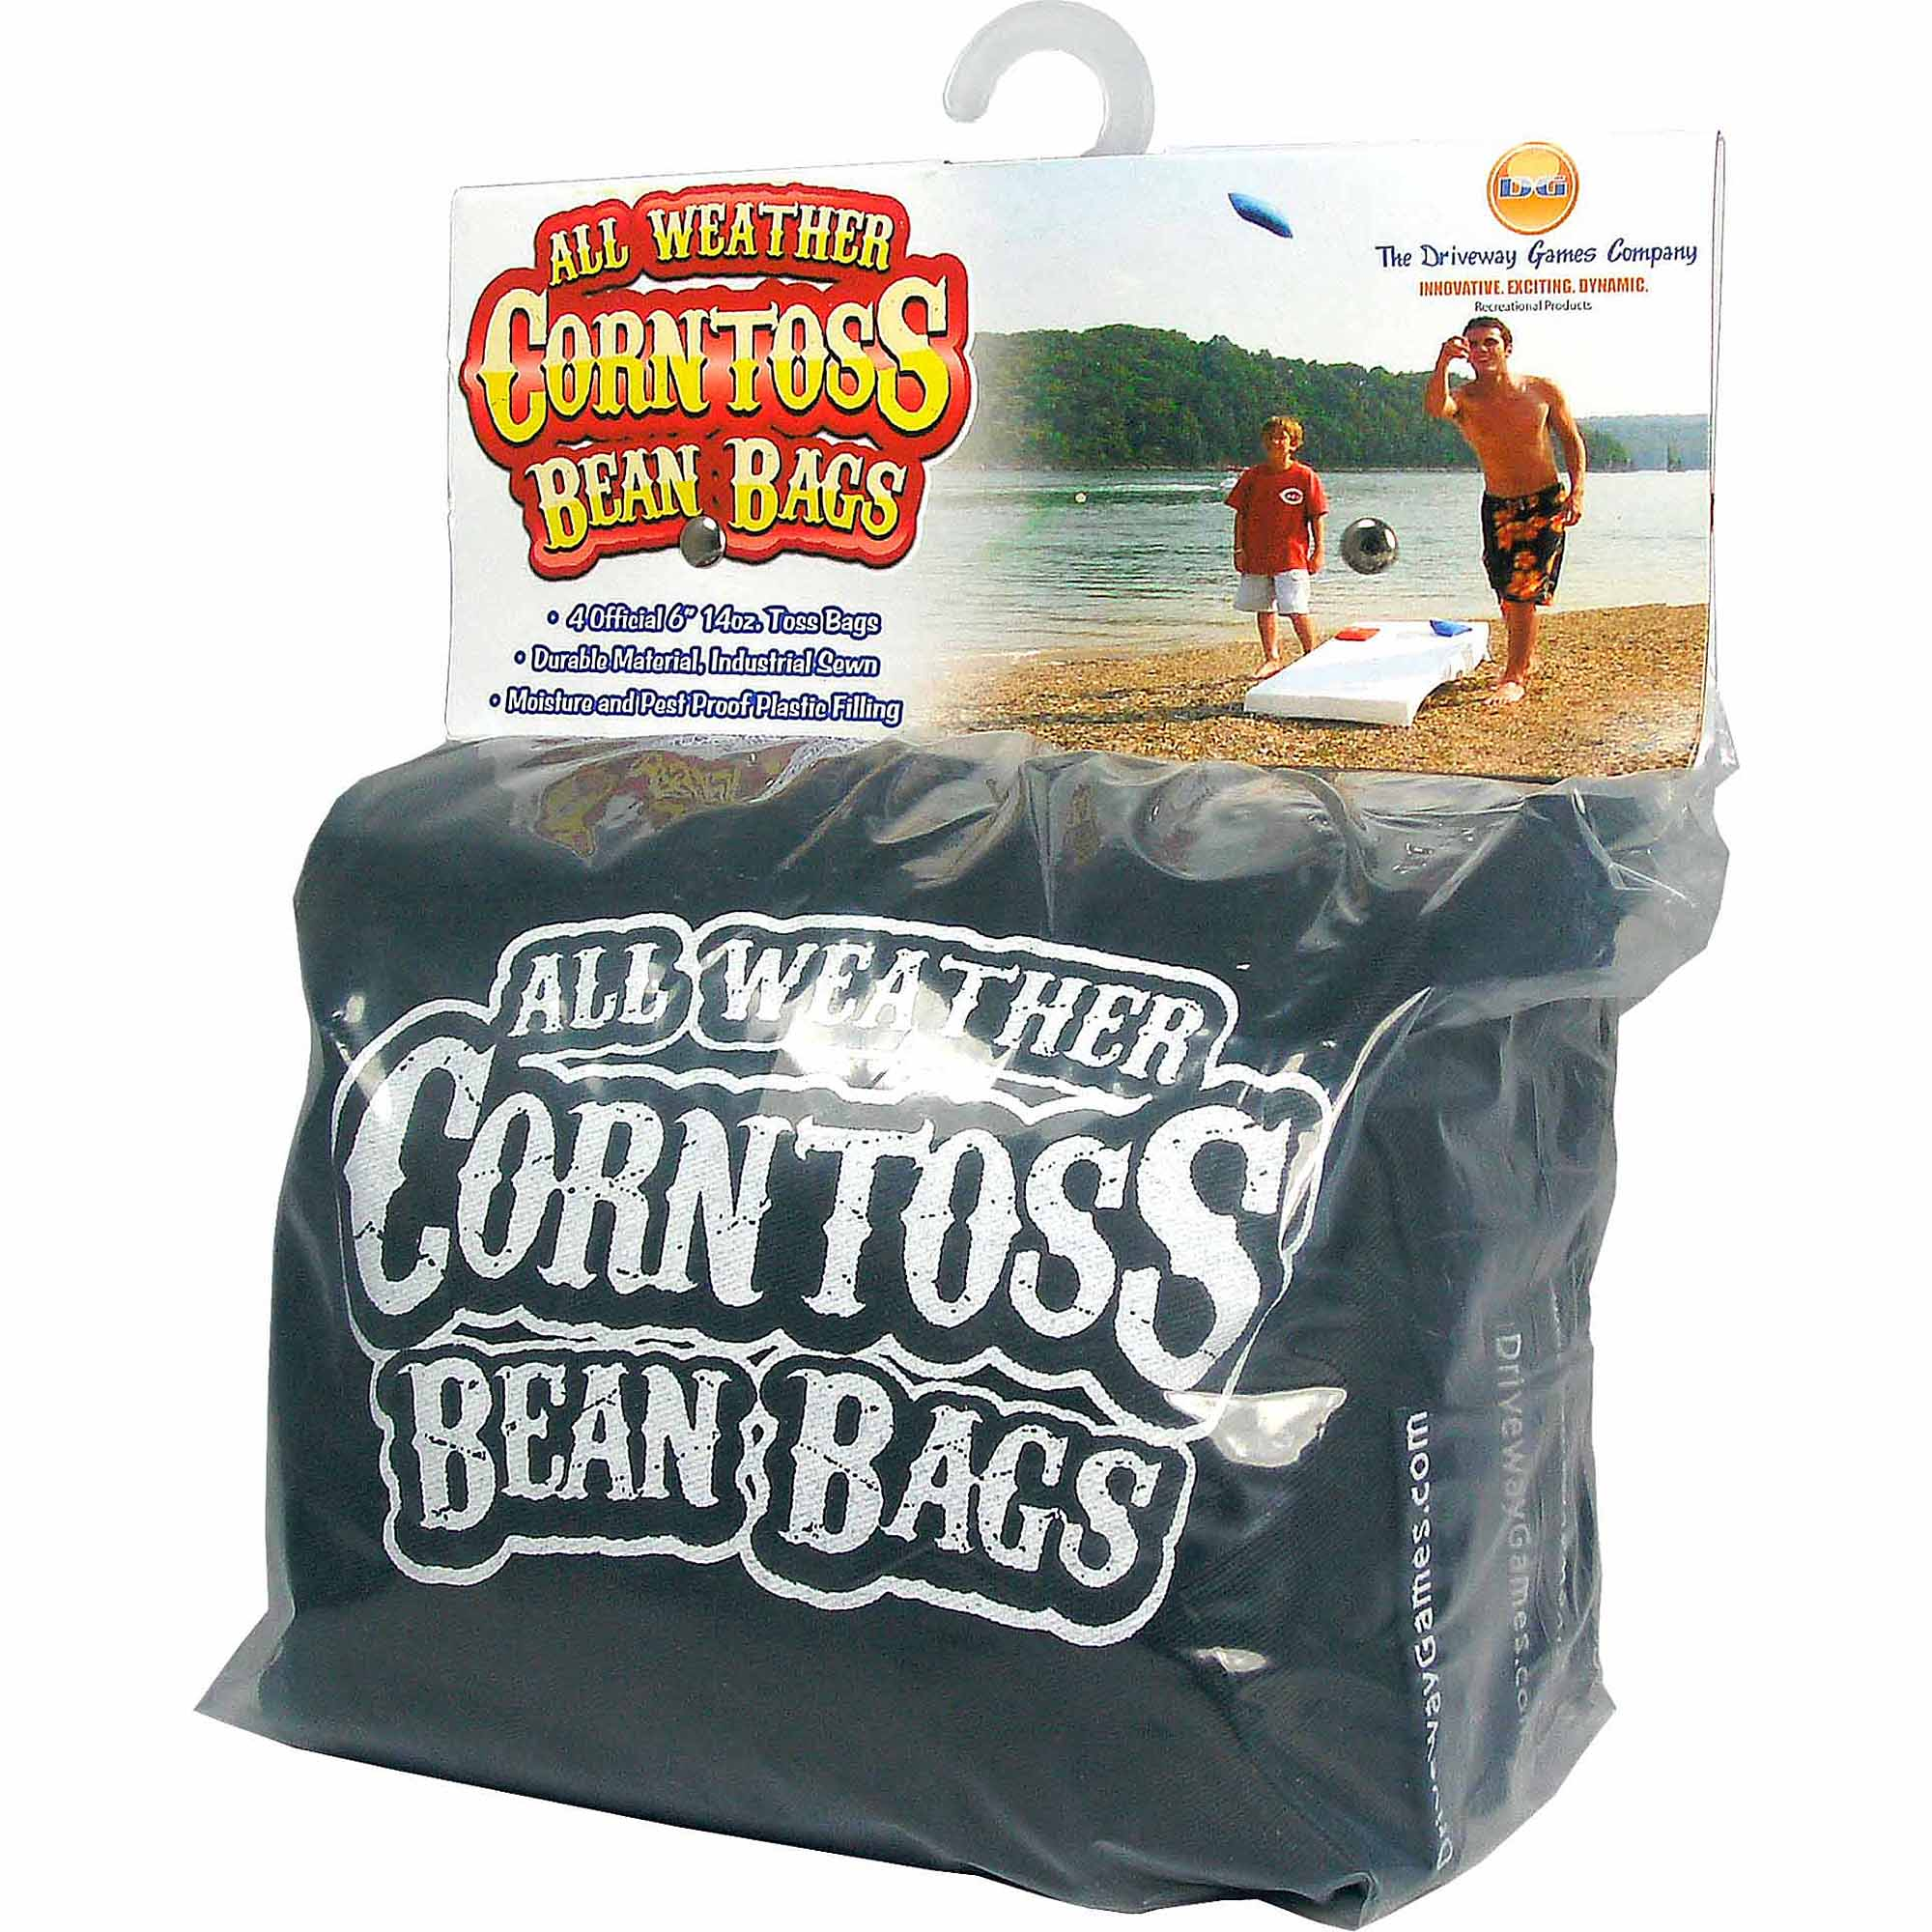 Driveway Games All Weather Corntoss Bean Bags, Black